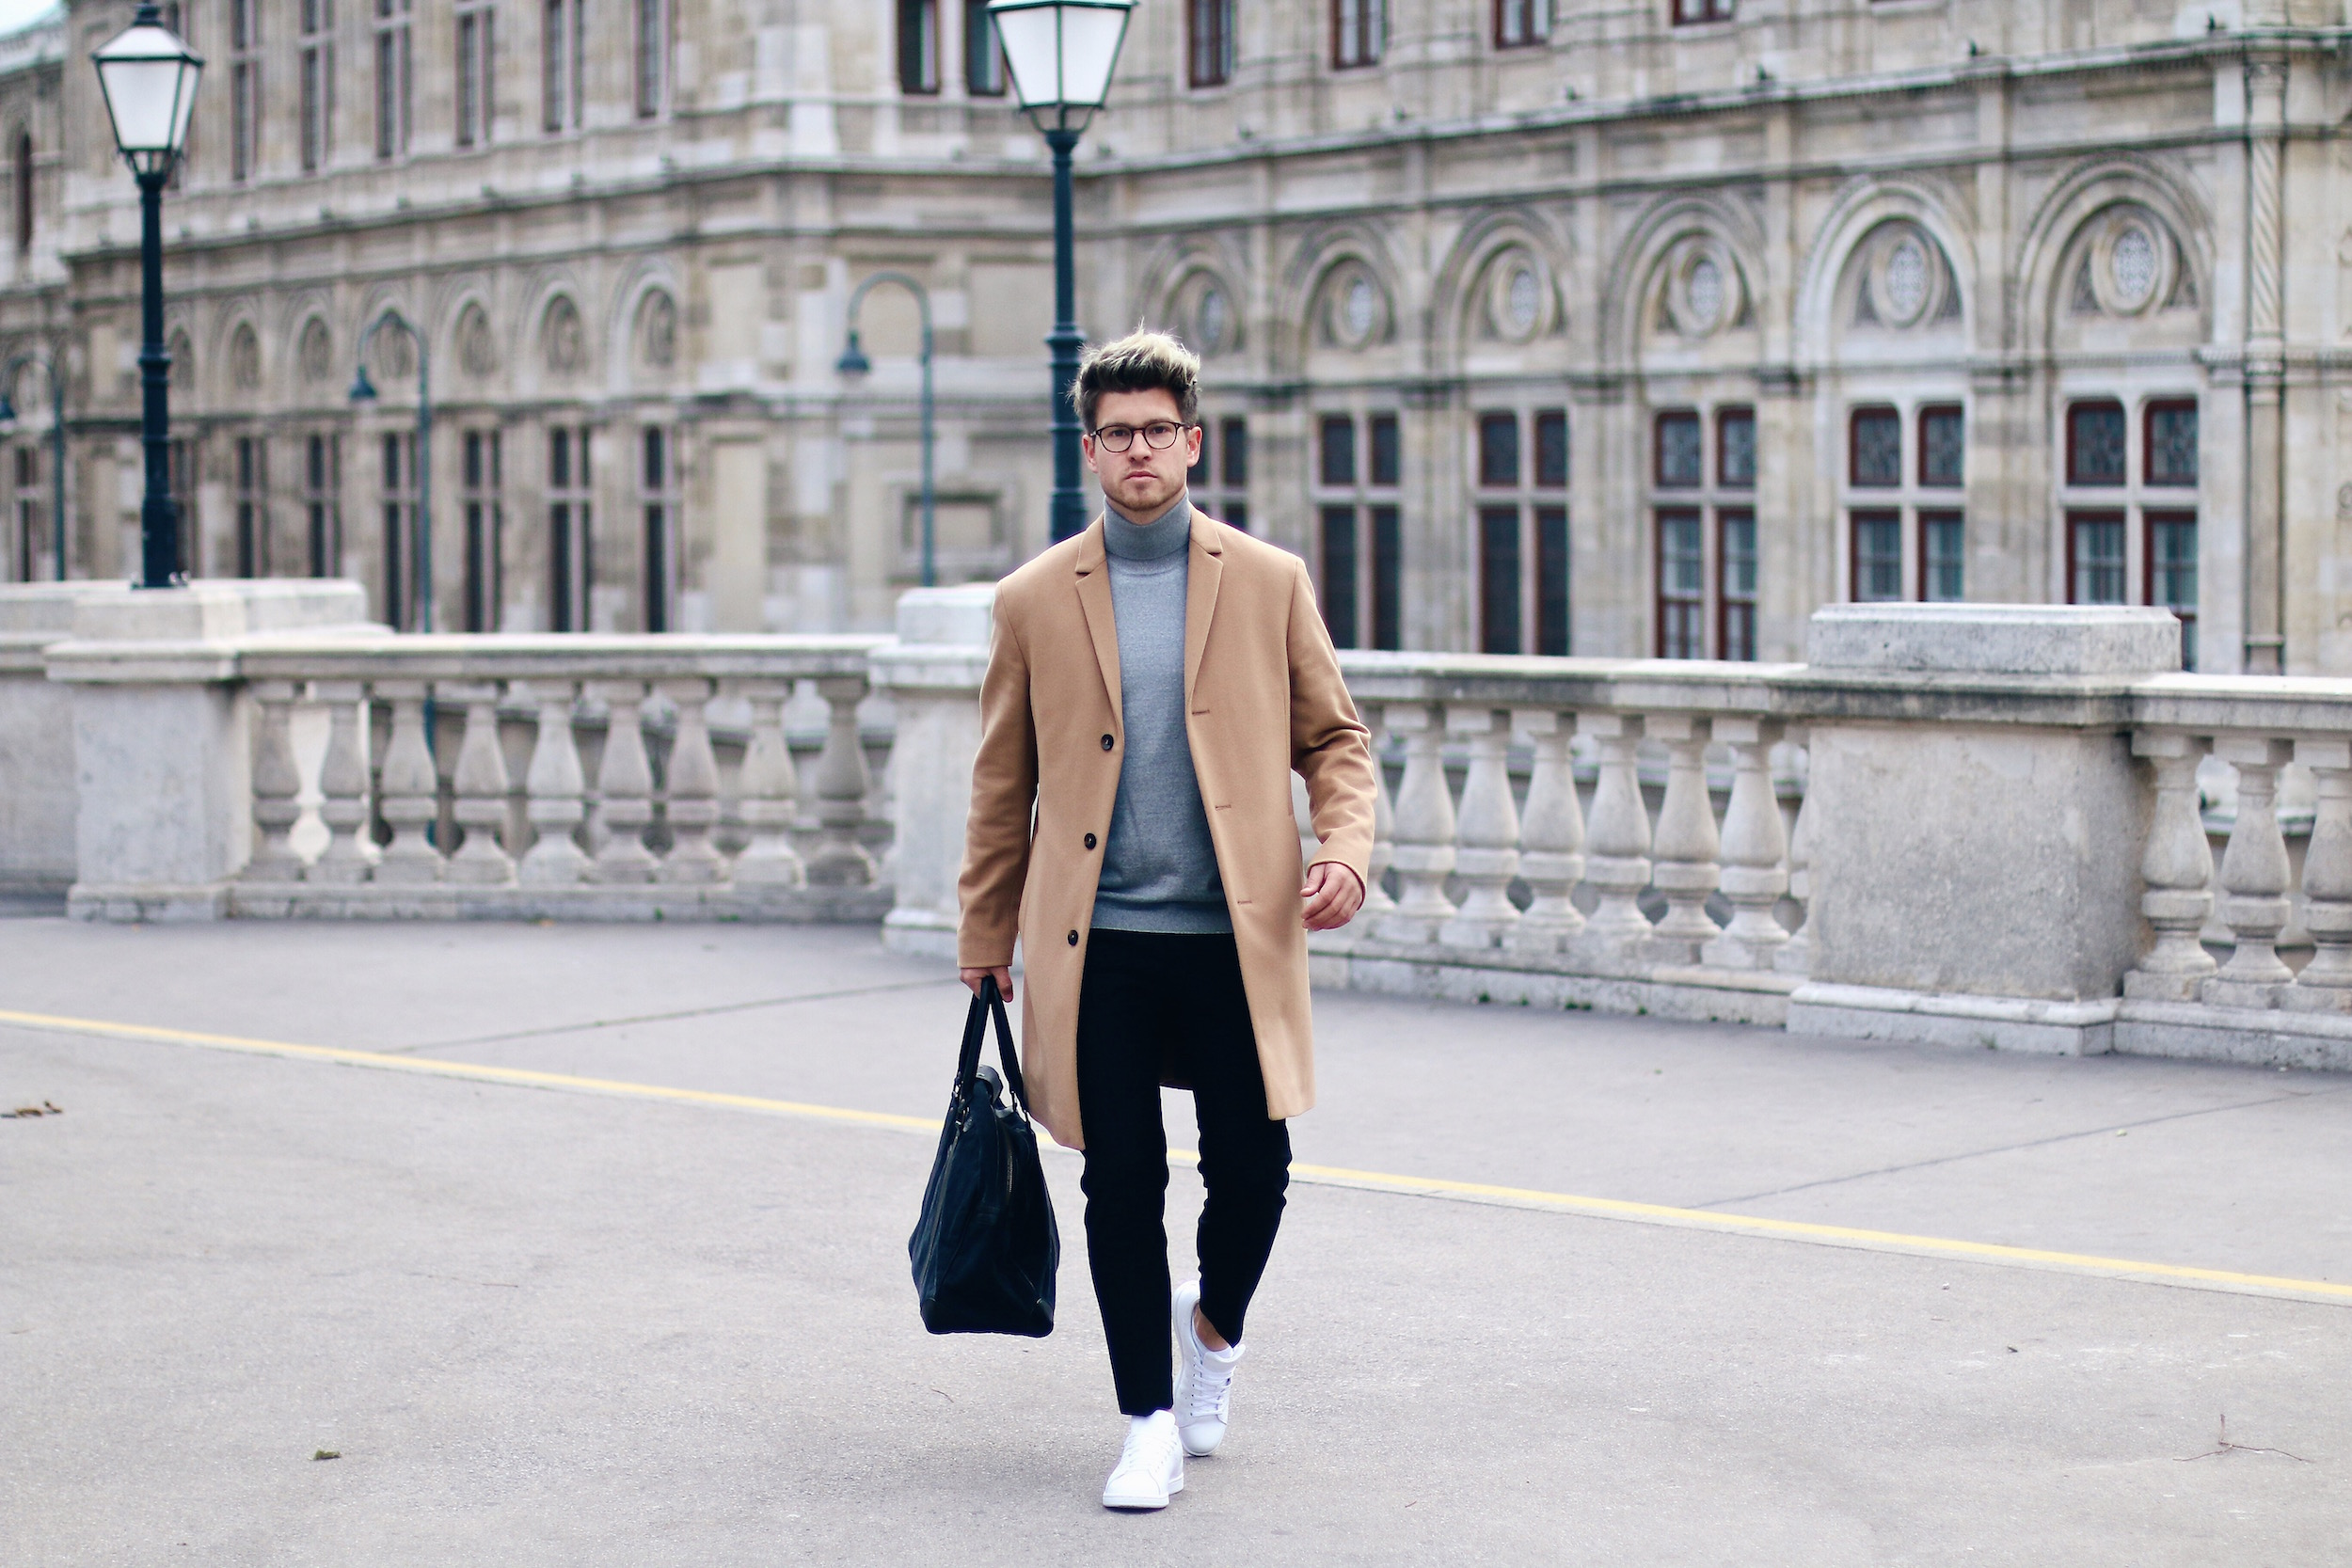 Peek & Cloppenburg Online Shop Launch Austria_Outfit Calvin Klein Camel Coat by Meanwhile in Awesometown_Austrian Mens Fashion and Lifestyle Blog 8